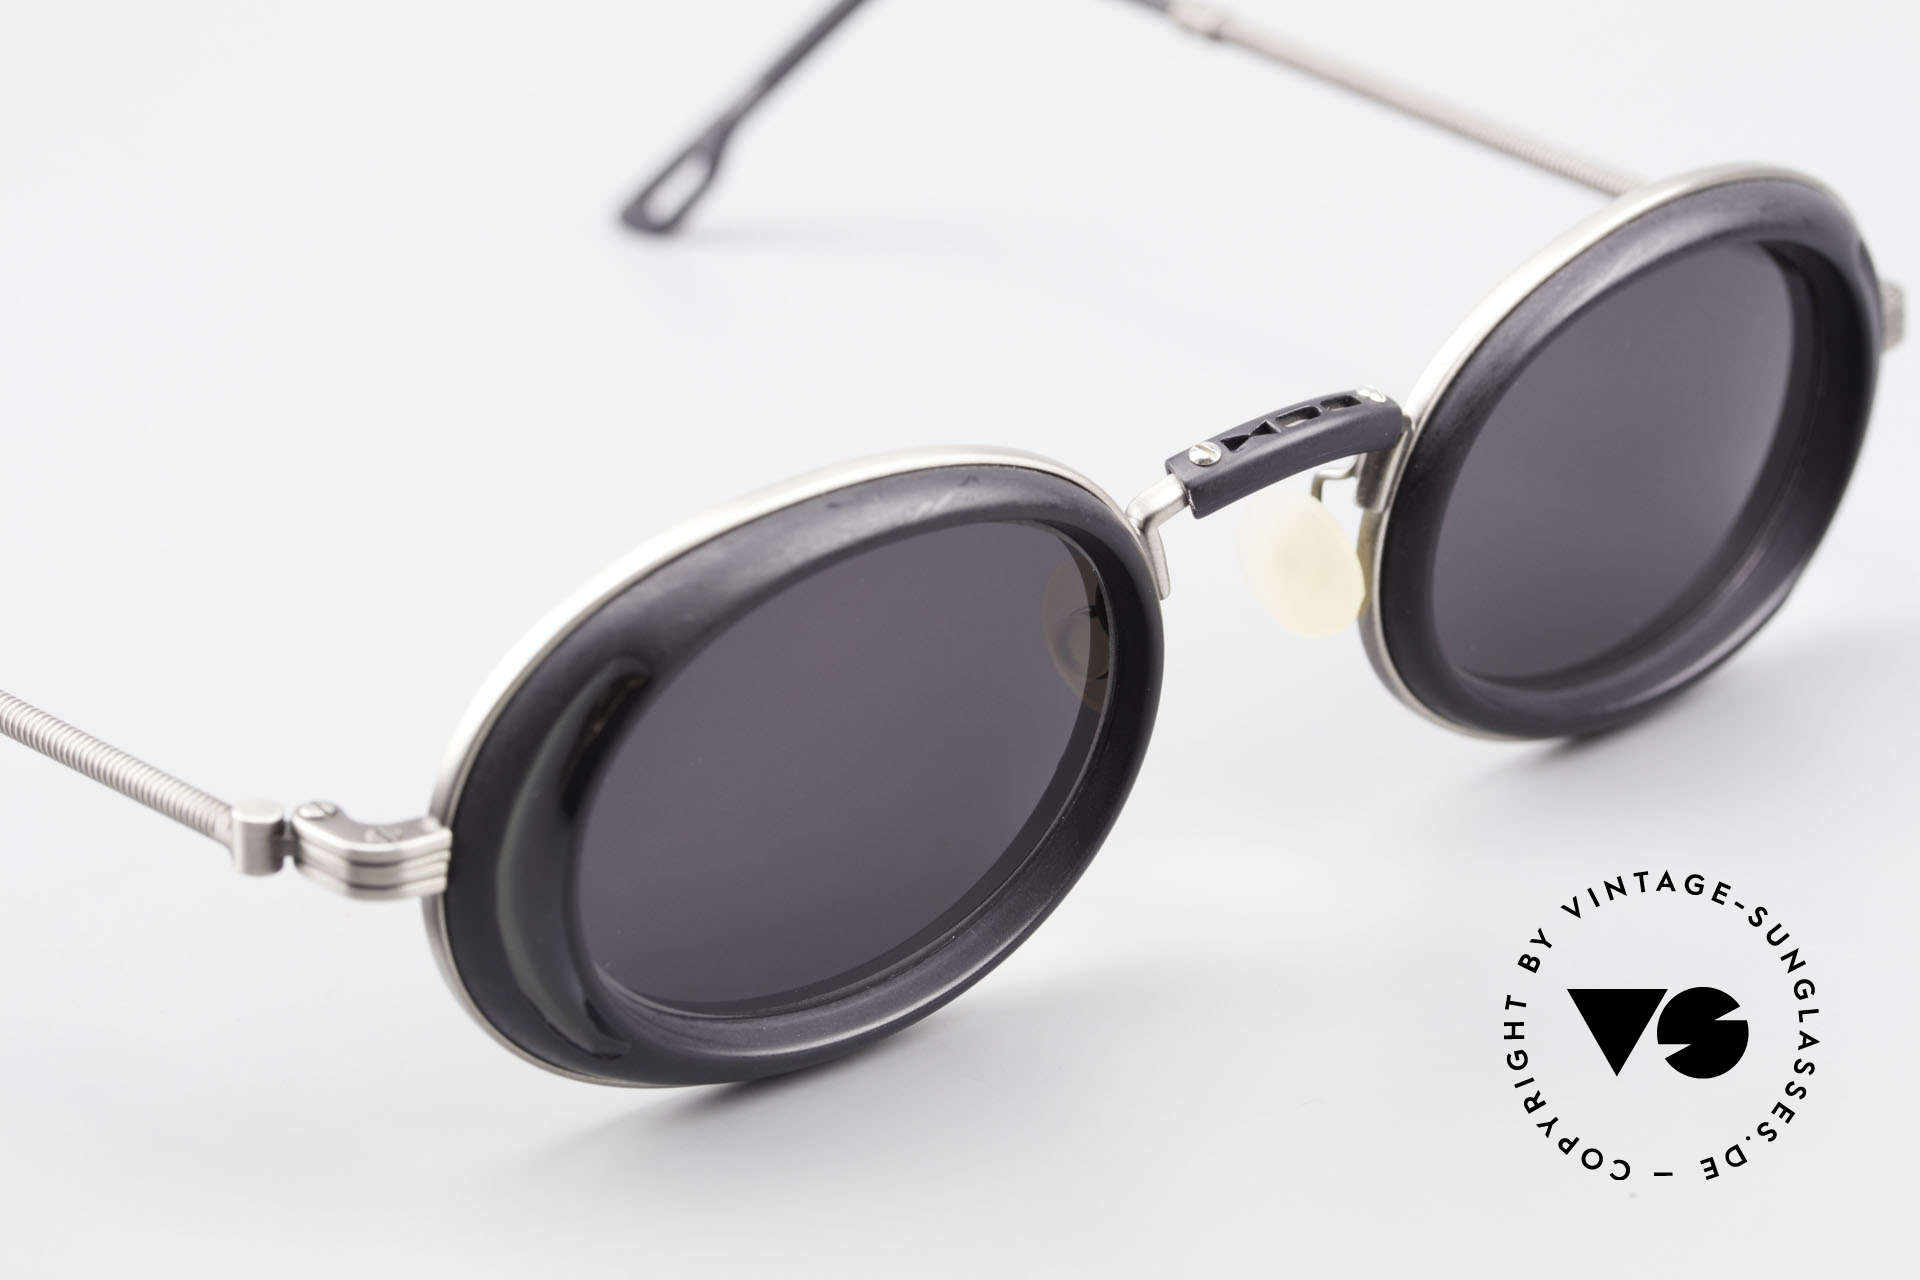 DOX 05 ATS Industrial Frame Gaultier Syle, unworn, NOS (like all our 90's sunglasses from Japan), Made for Men and Women